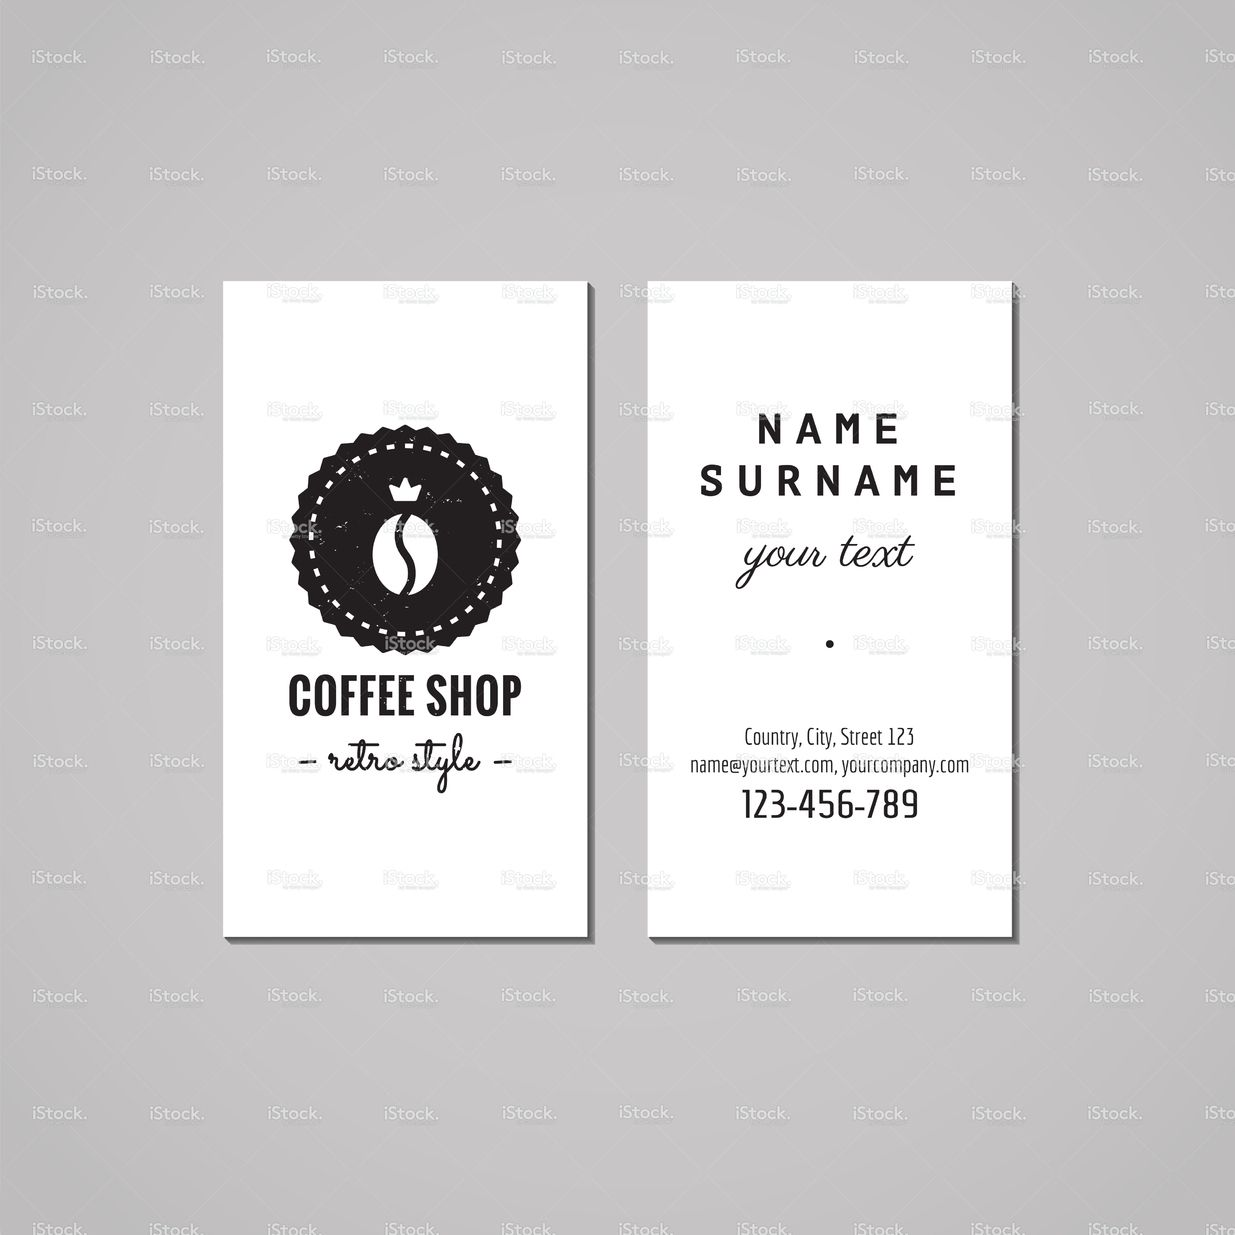 Coffee shop business card design concept coffee shop logo badge coffee shop business card design concept logo badge with coffee bean stock vector art reheart Images